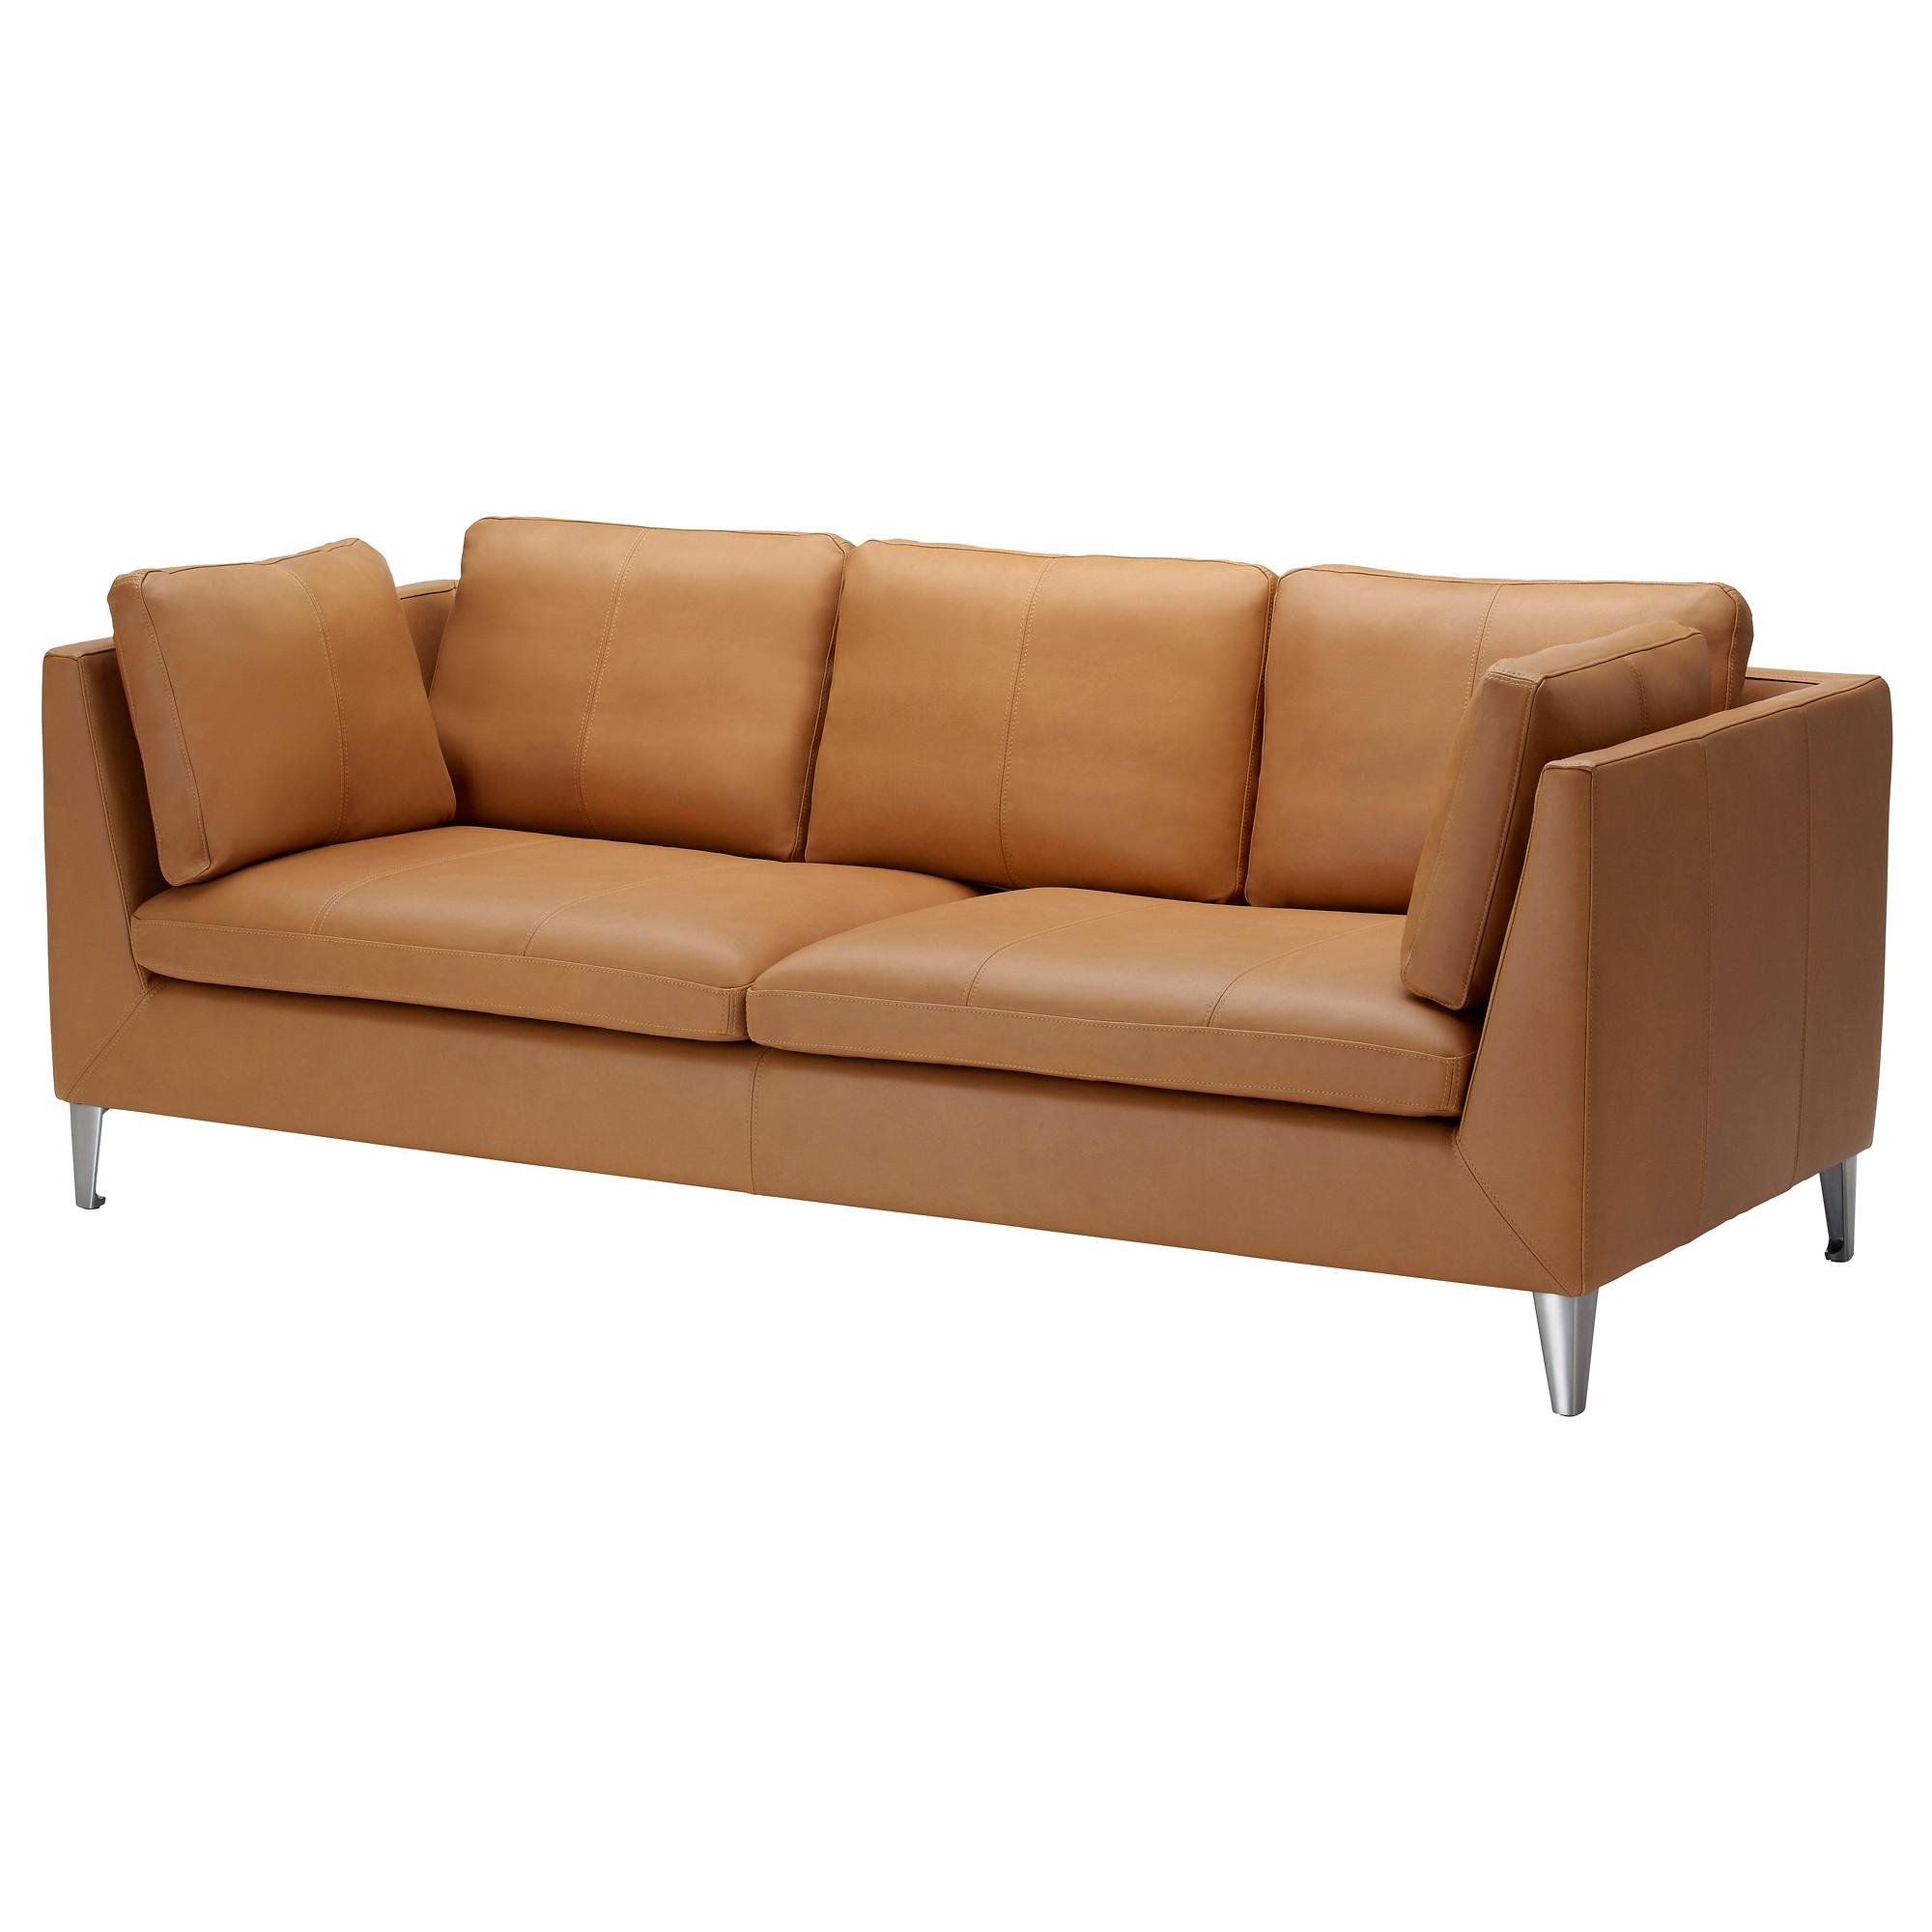 Leather & Faux Leather Couches, Chairs & Ottomans – Ikea With Light Tan Leather Sofas (Image 8 of 20)